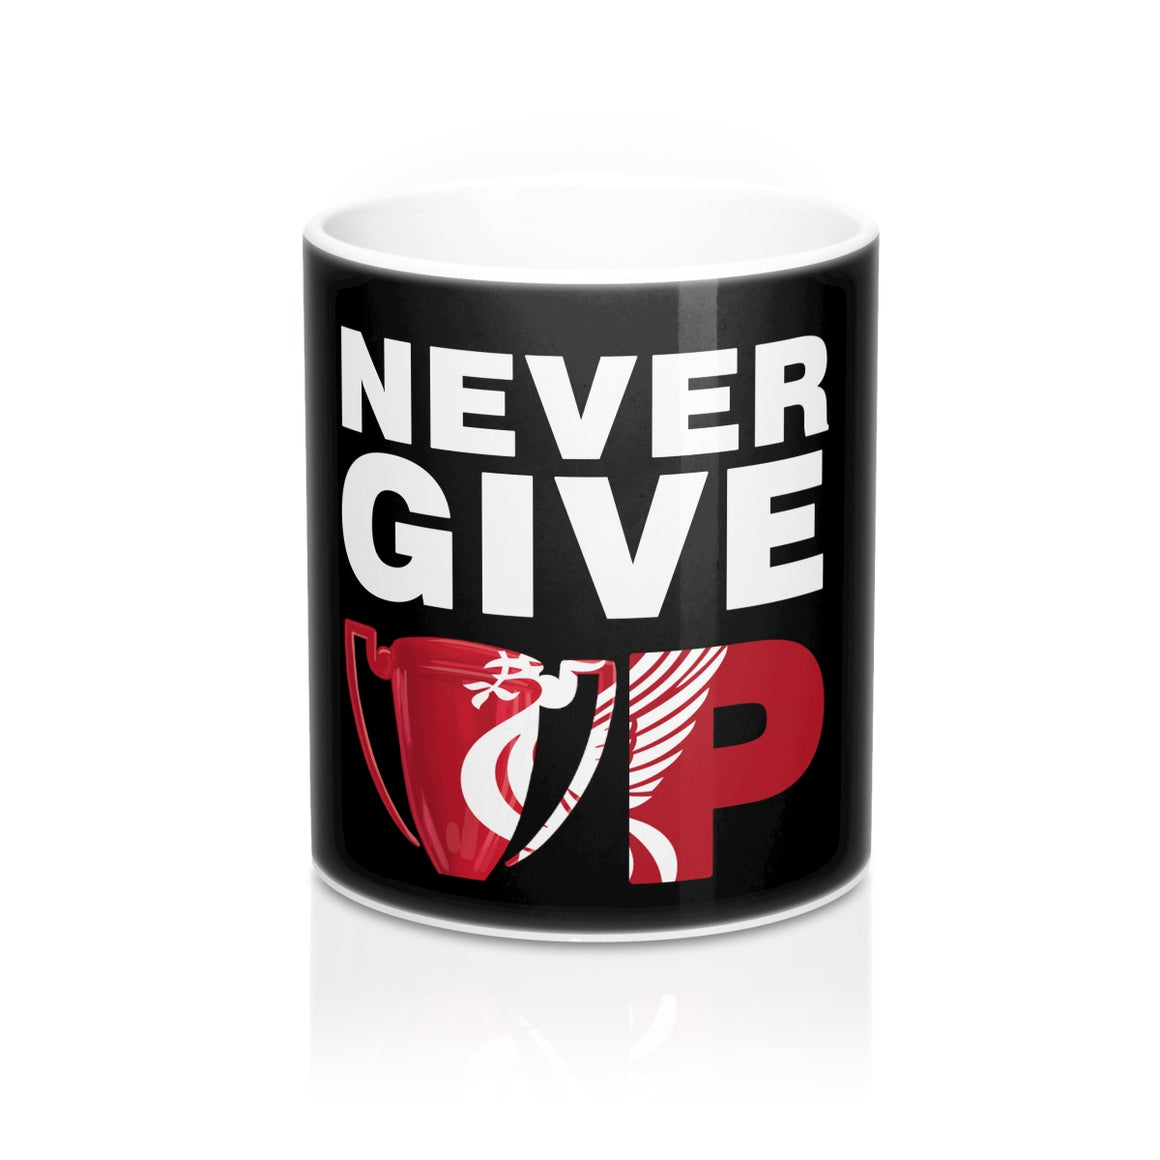 Never Give Up Liverpool Mug rugby